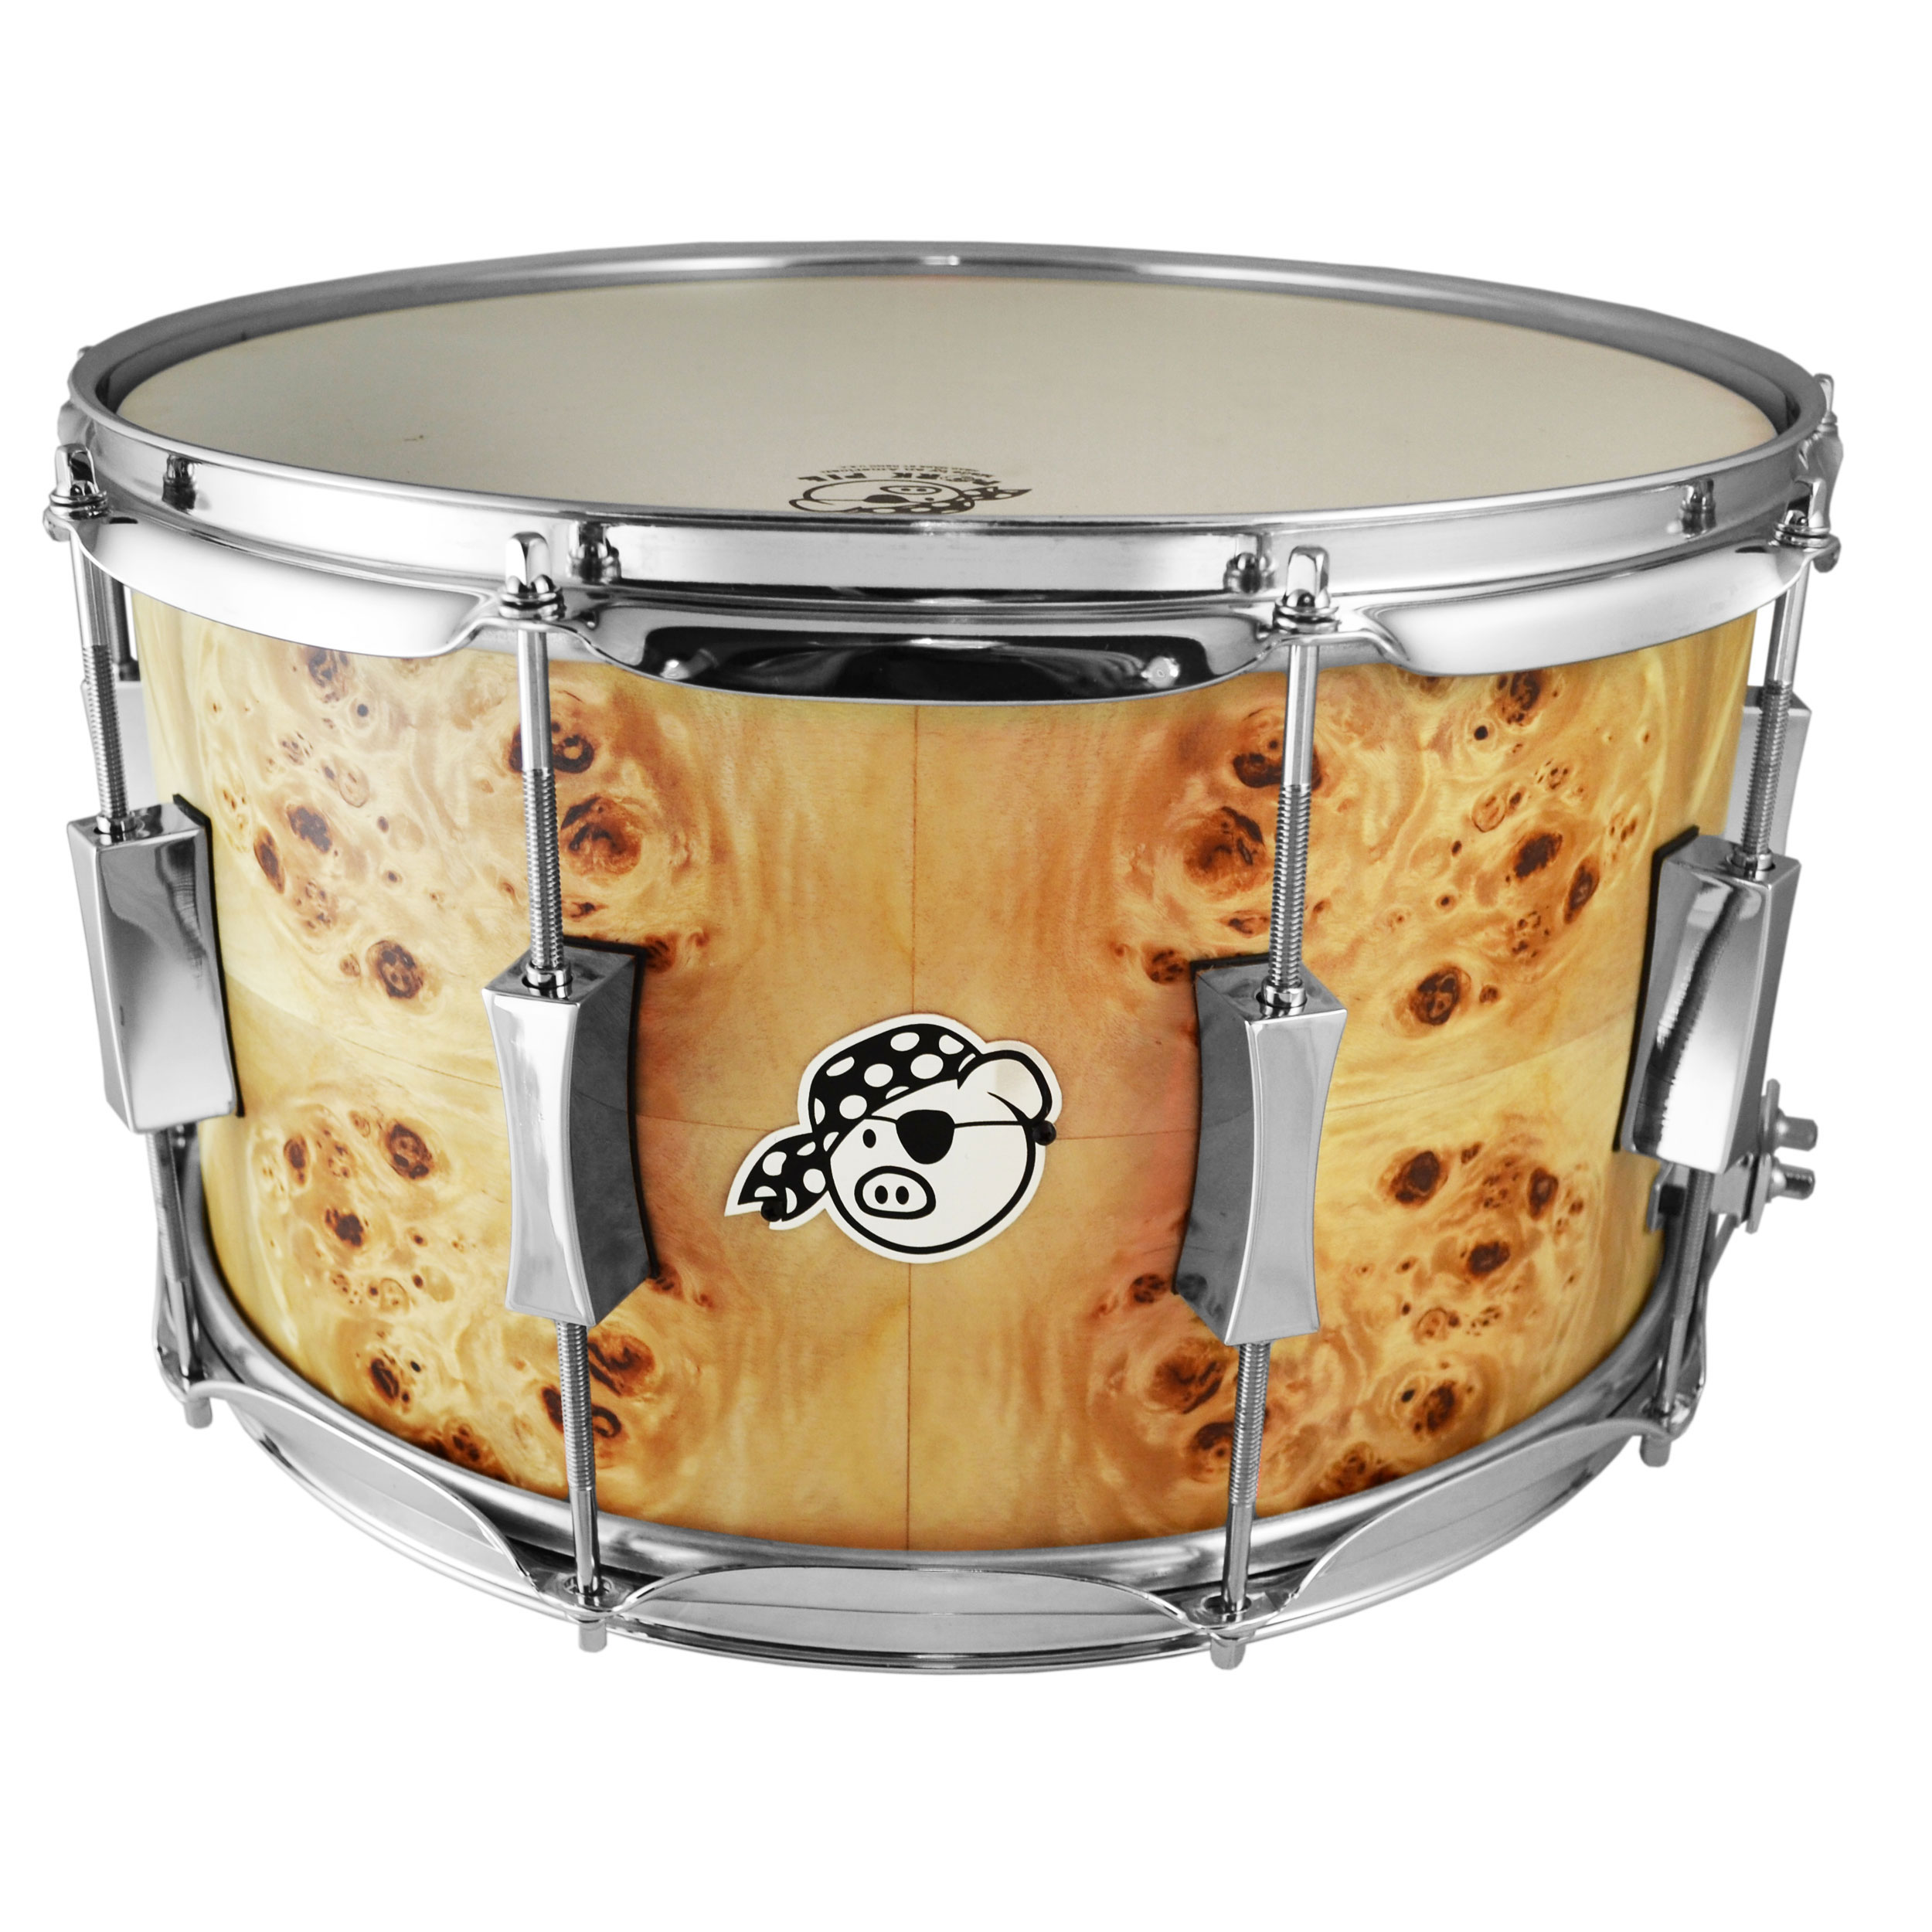 "Pork Pie Percussion 8"" x 14"" Maple Snare Drum with Mappa Burl Veneer in Flat Lacquer"